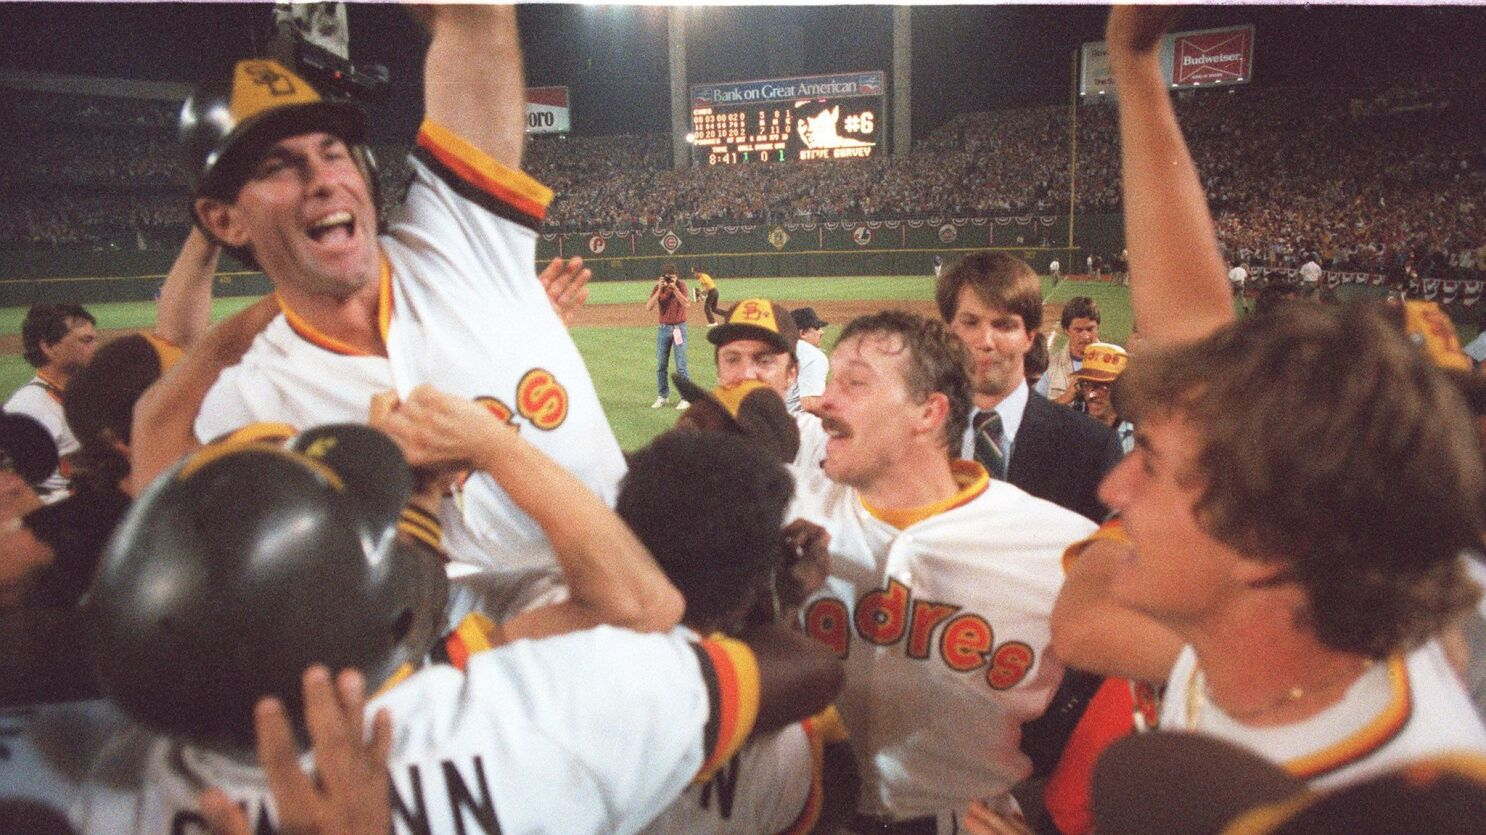 Garvey's sweet swing delivers No. 1 moment in San Diego sports history -  The San Diego Union-Tribune